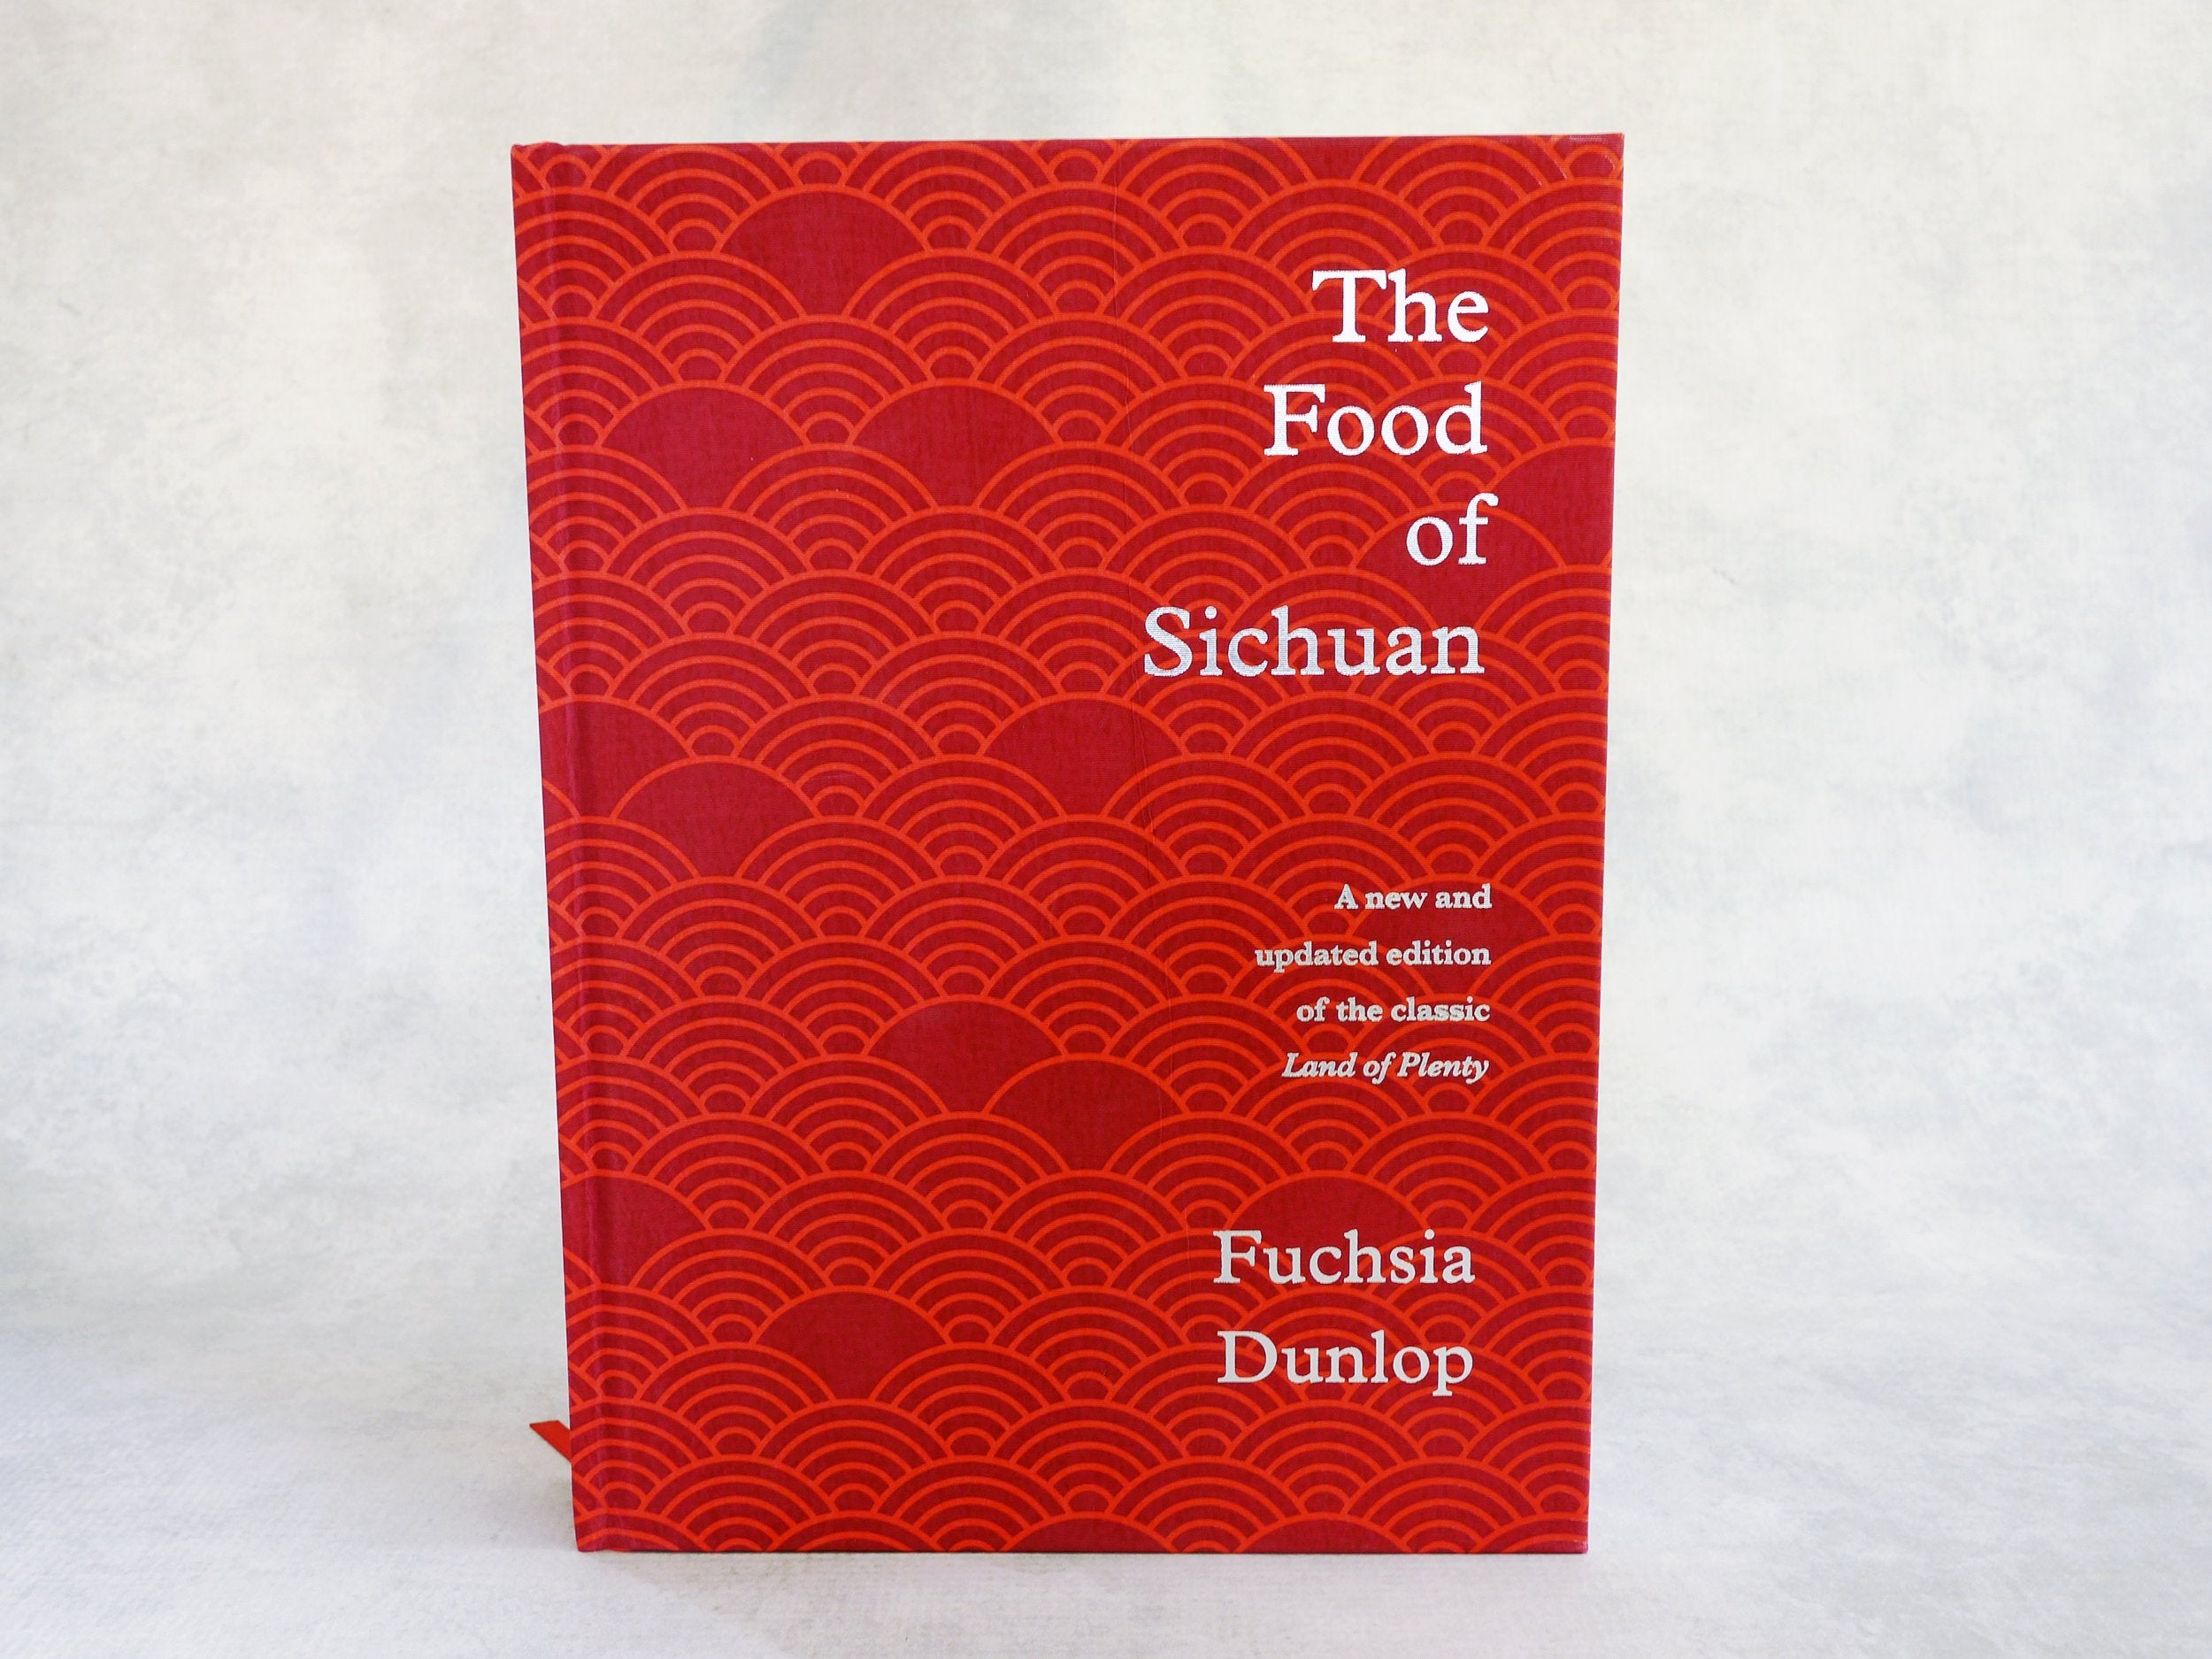 The Food of Sichuan (New Cookbook by Fuchsia Dunlop)